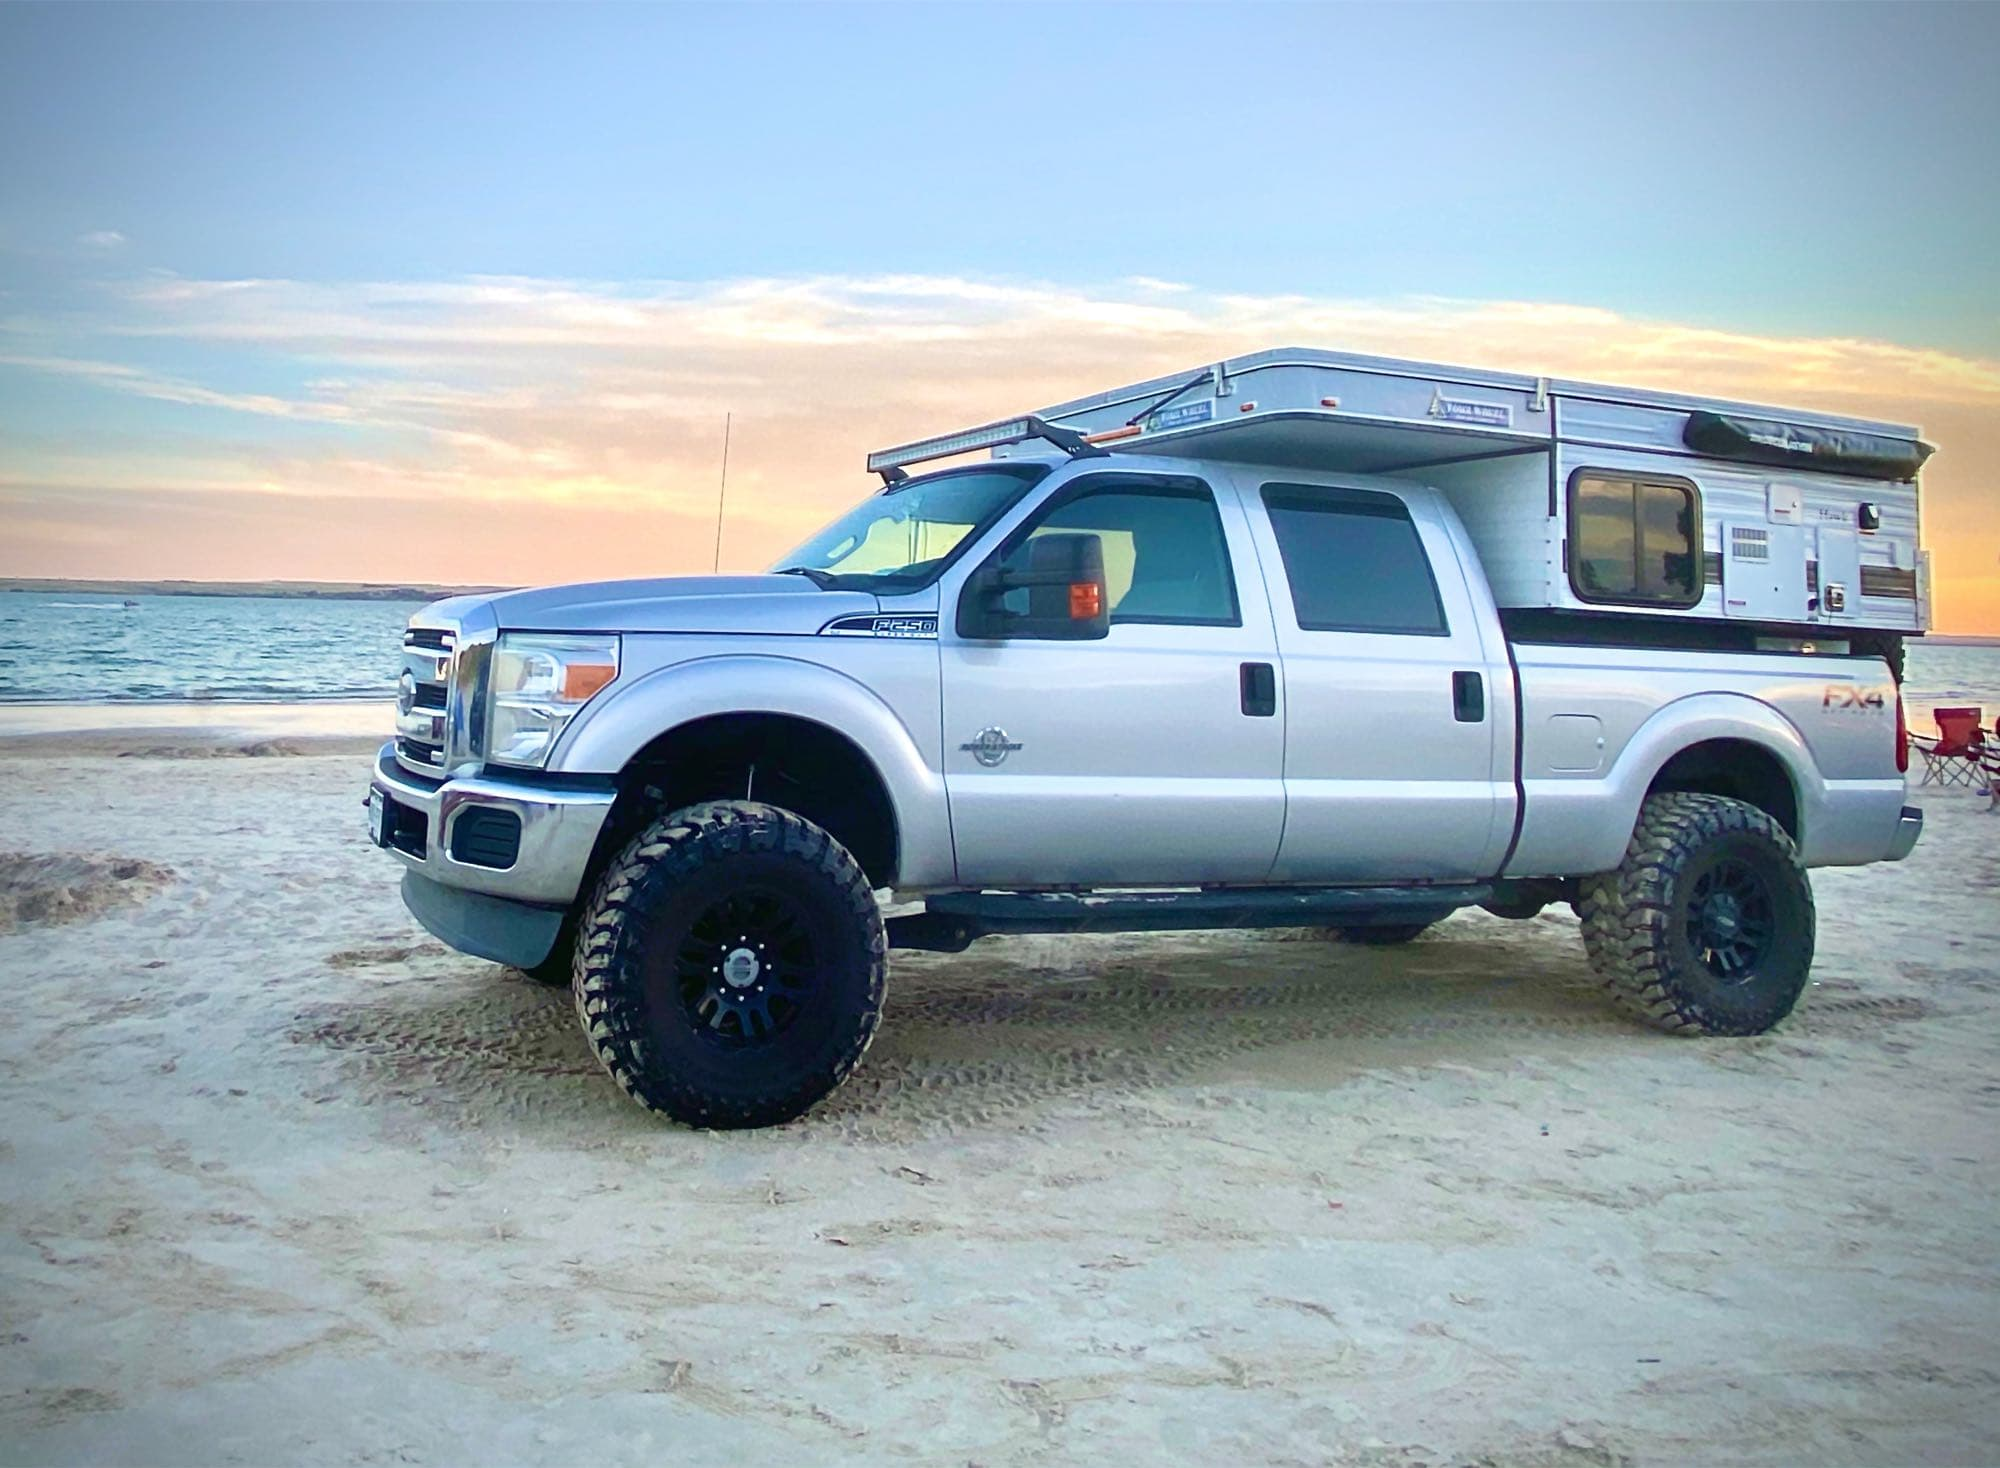 At the beach. Four Wheel Campers Hawk 2019